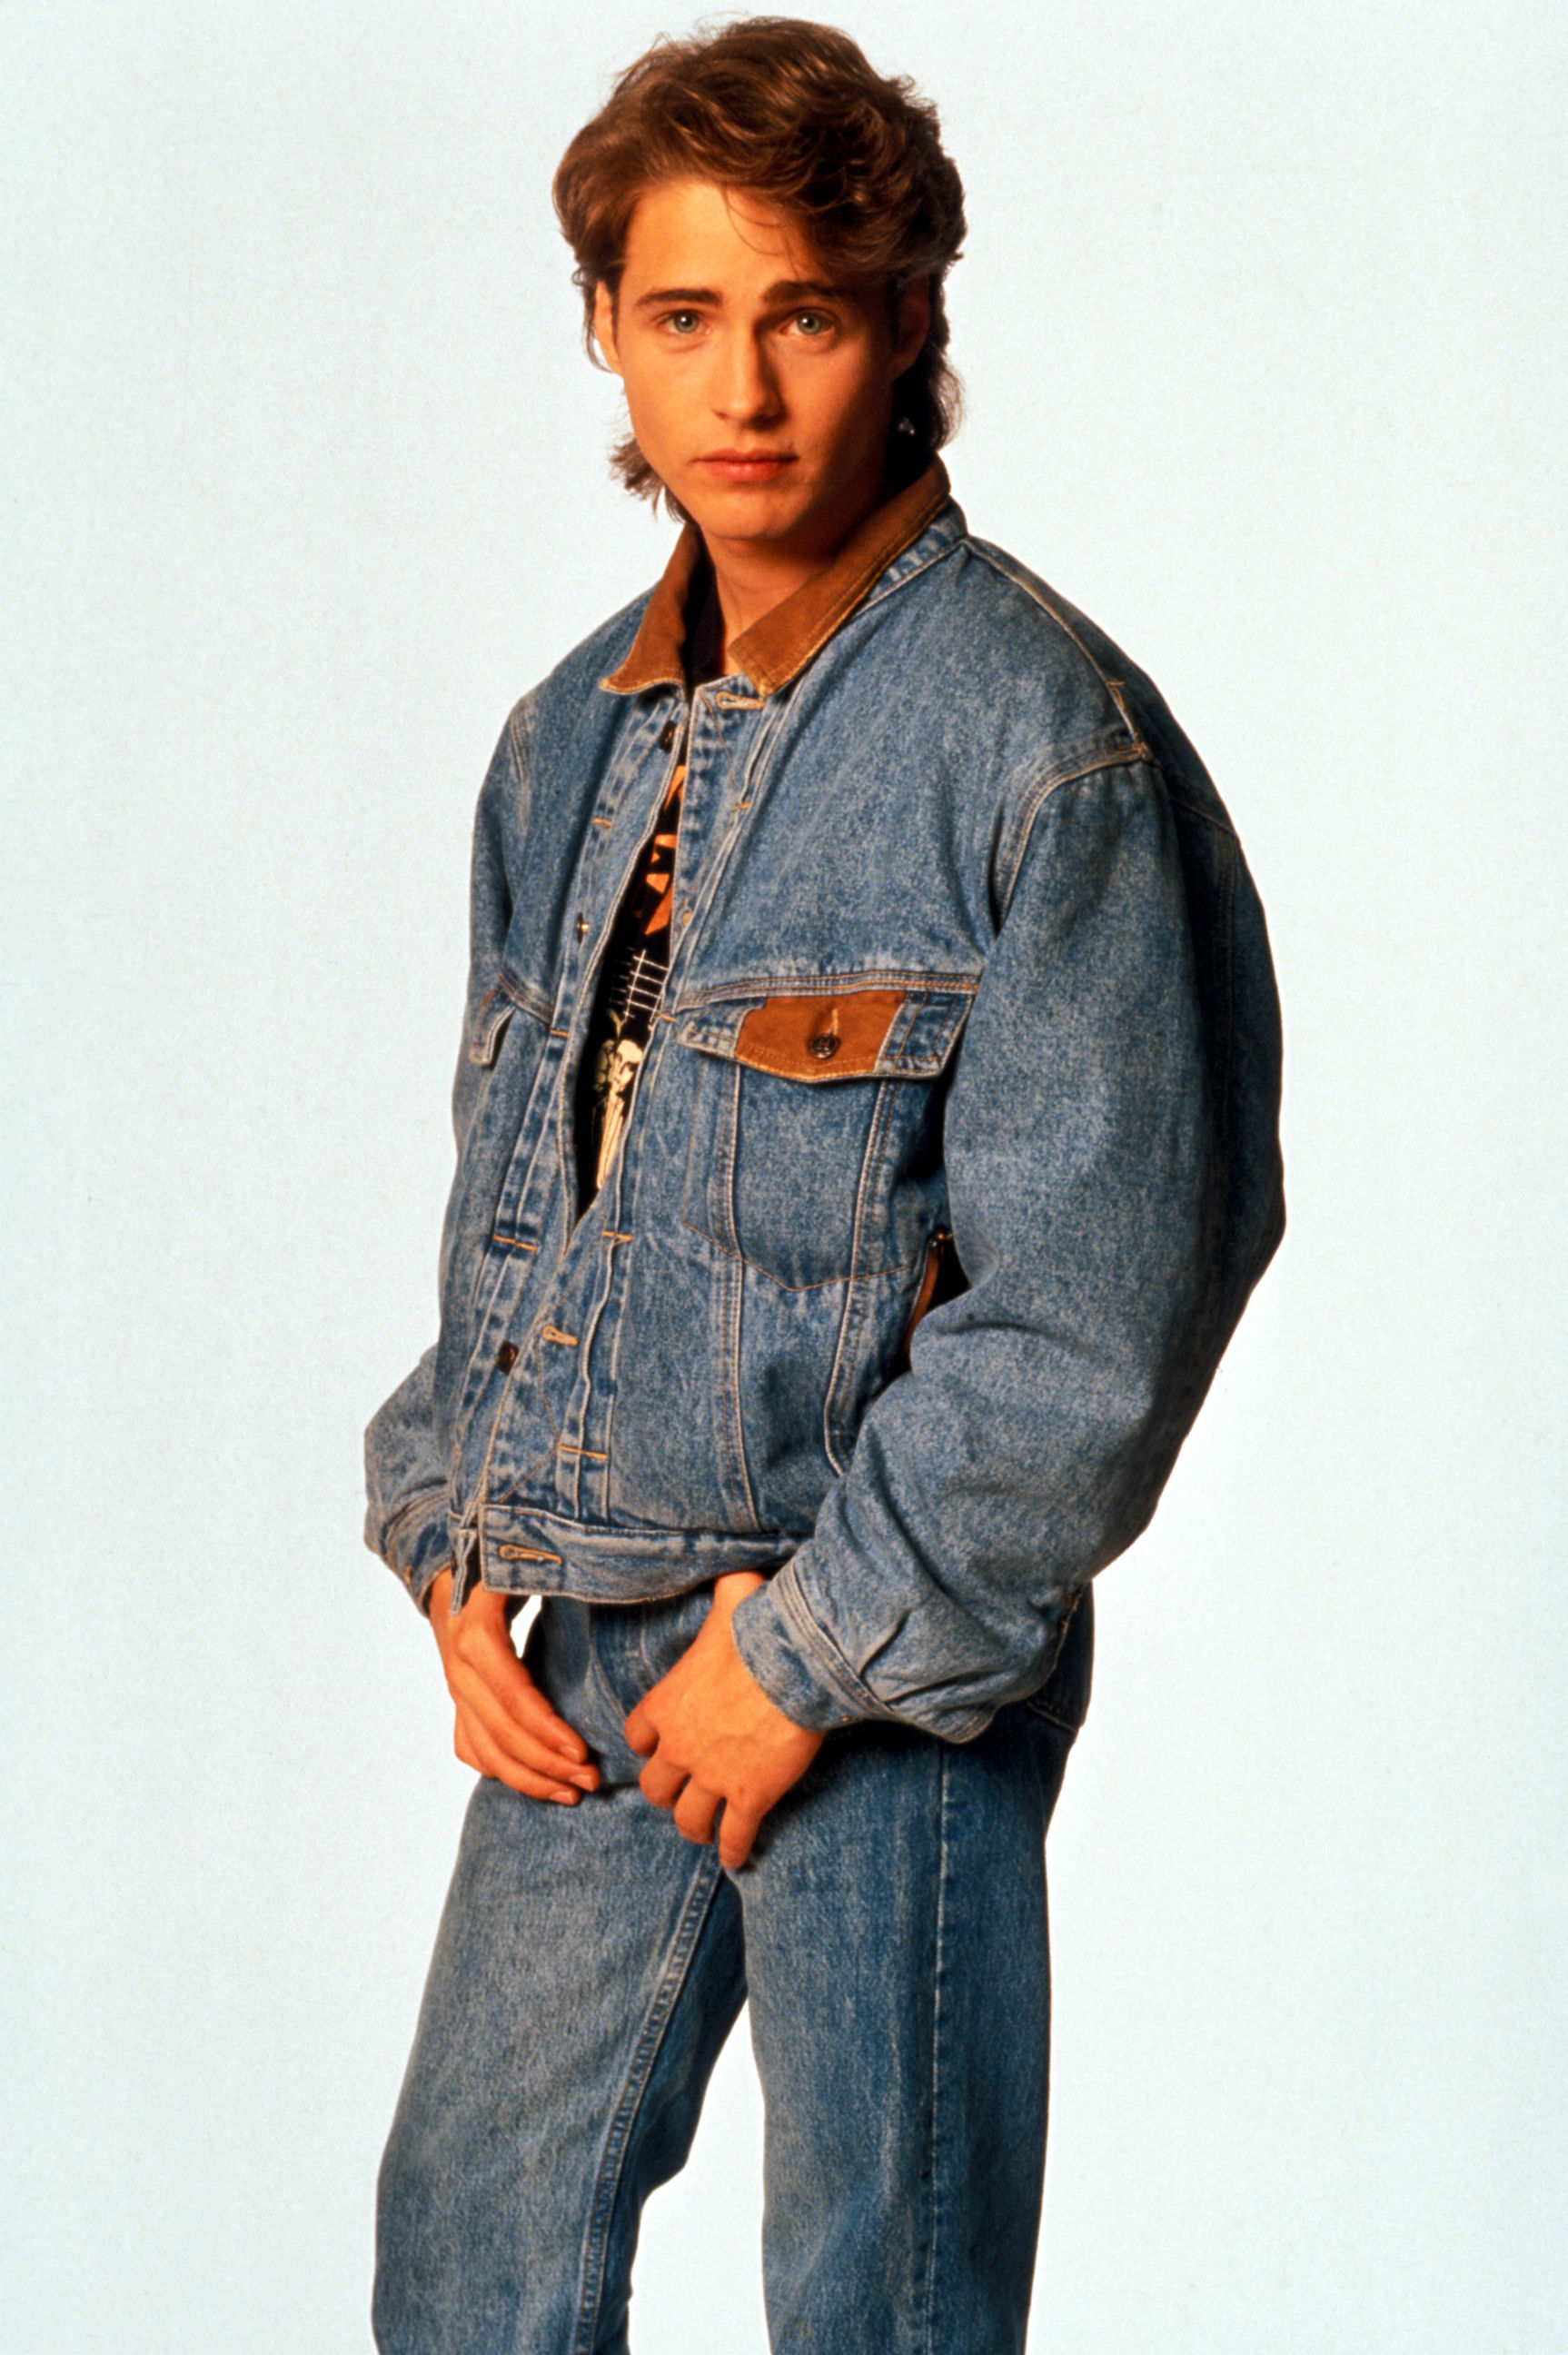 1990s fashion trends for men